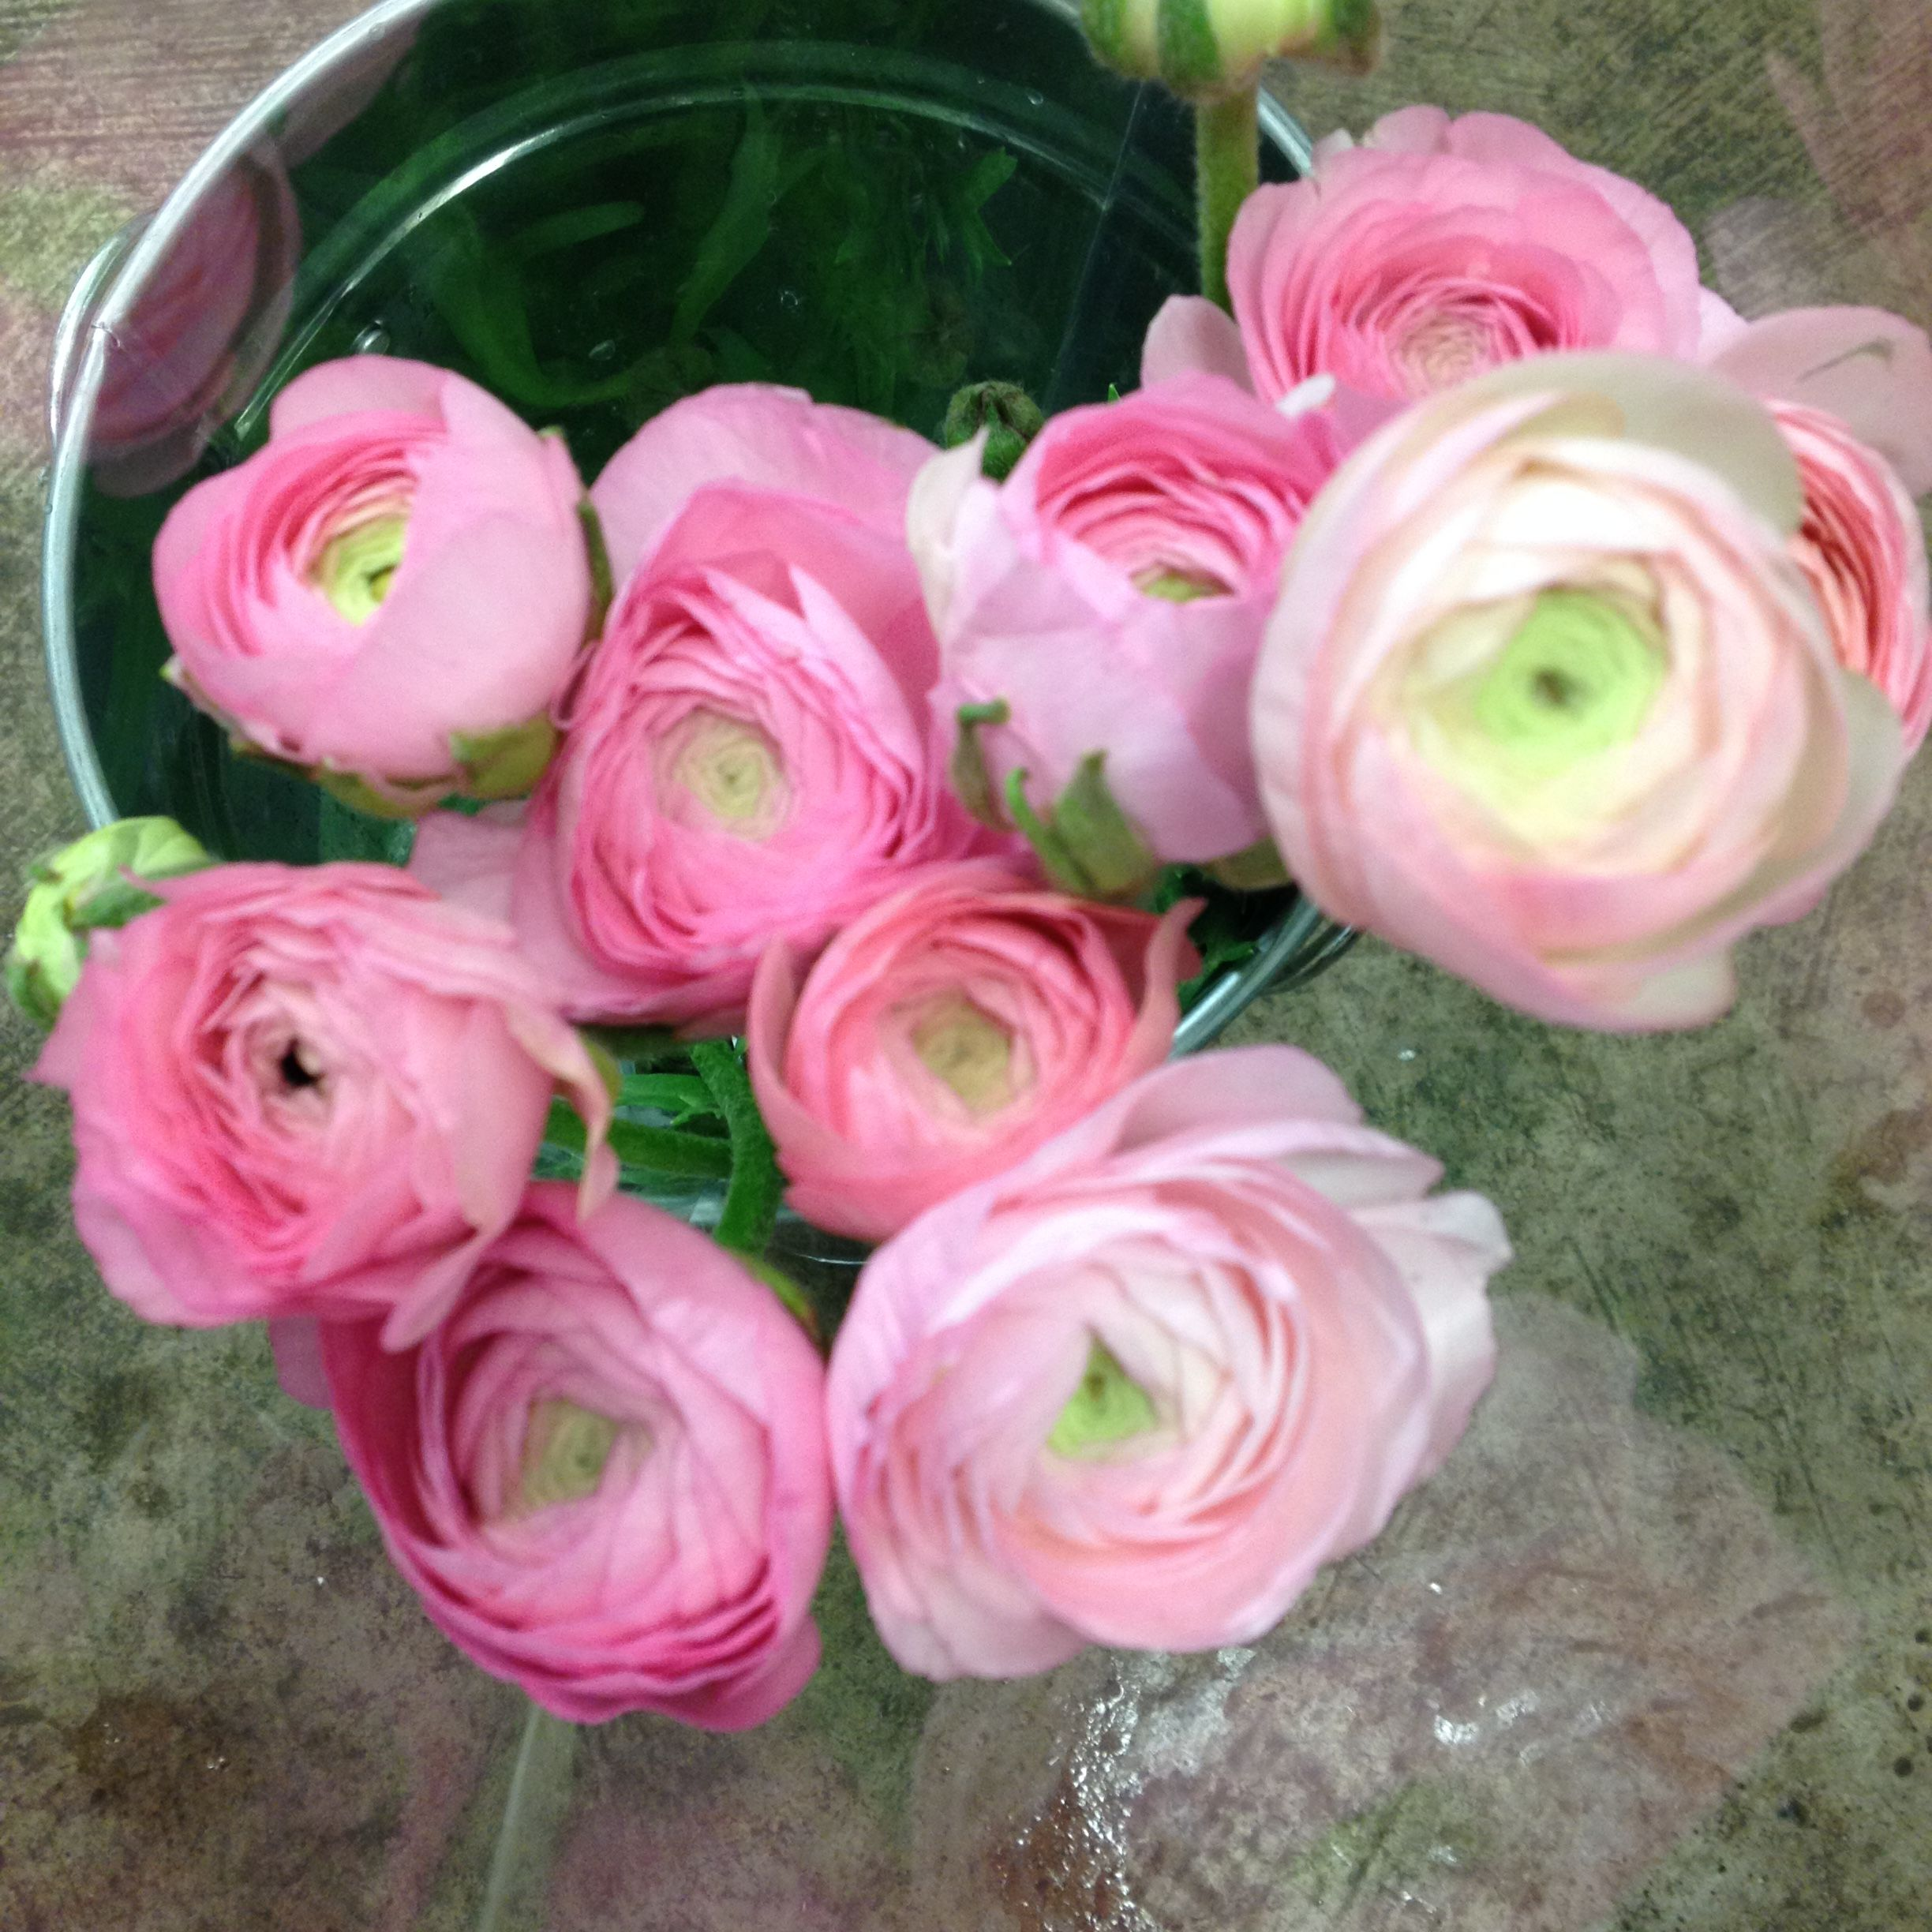 Ranunculus Just Love These Flowers This One Is Amandine Pastel Pink Sold In Bunches Of 20 Stems From Wholesale Fresh Flowers Flowers Diy Wedding Flowers